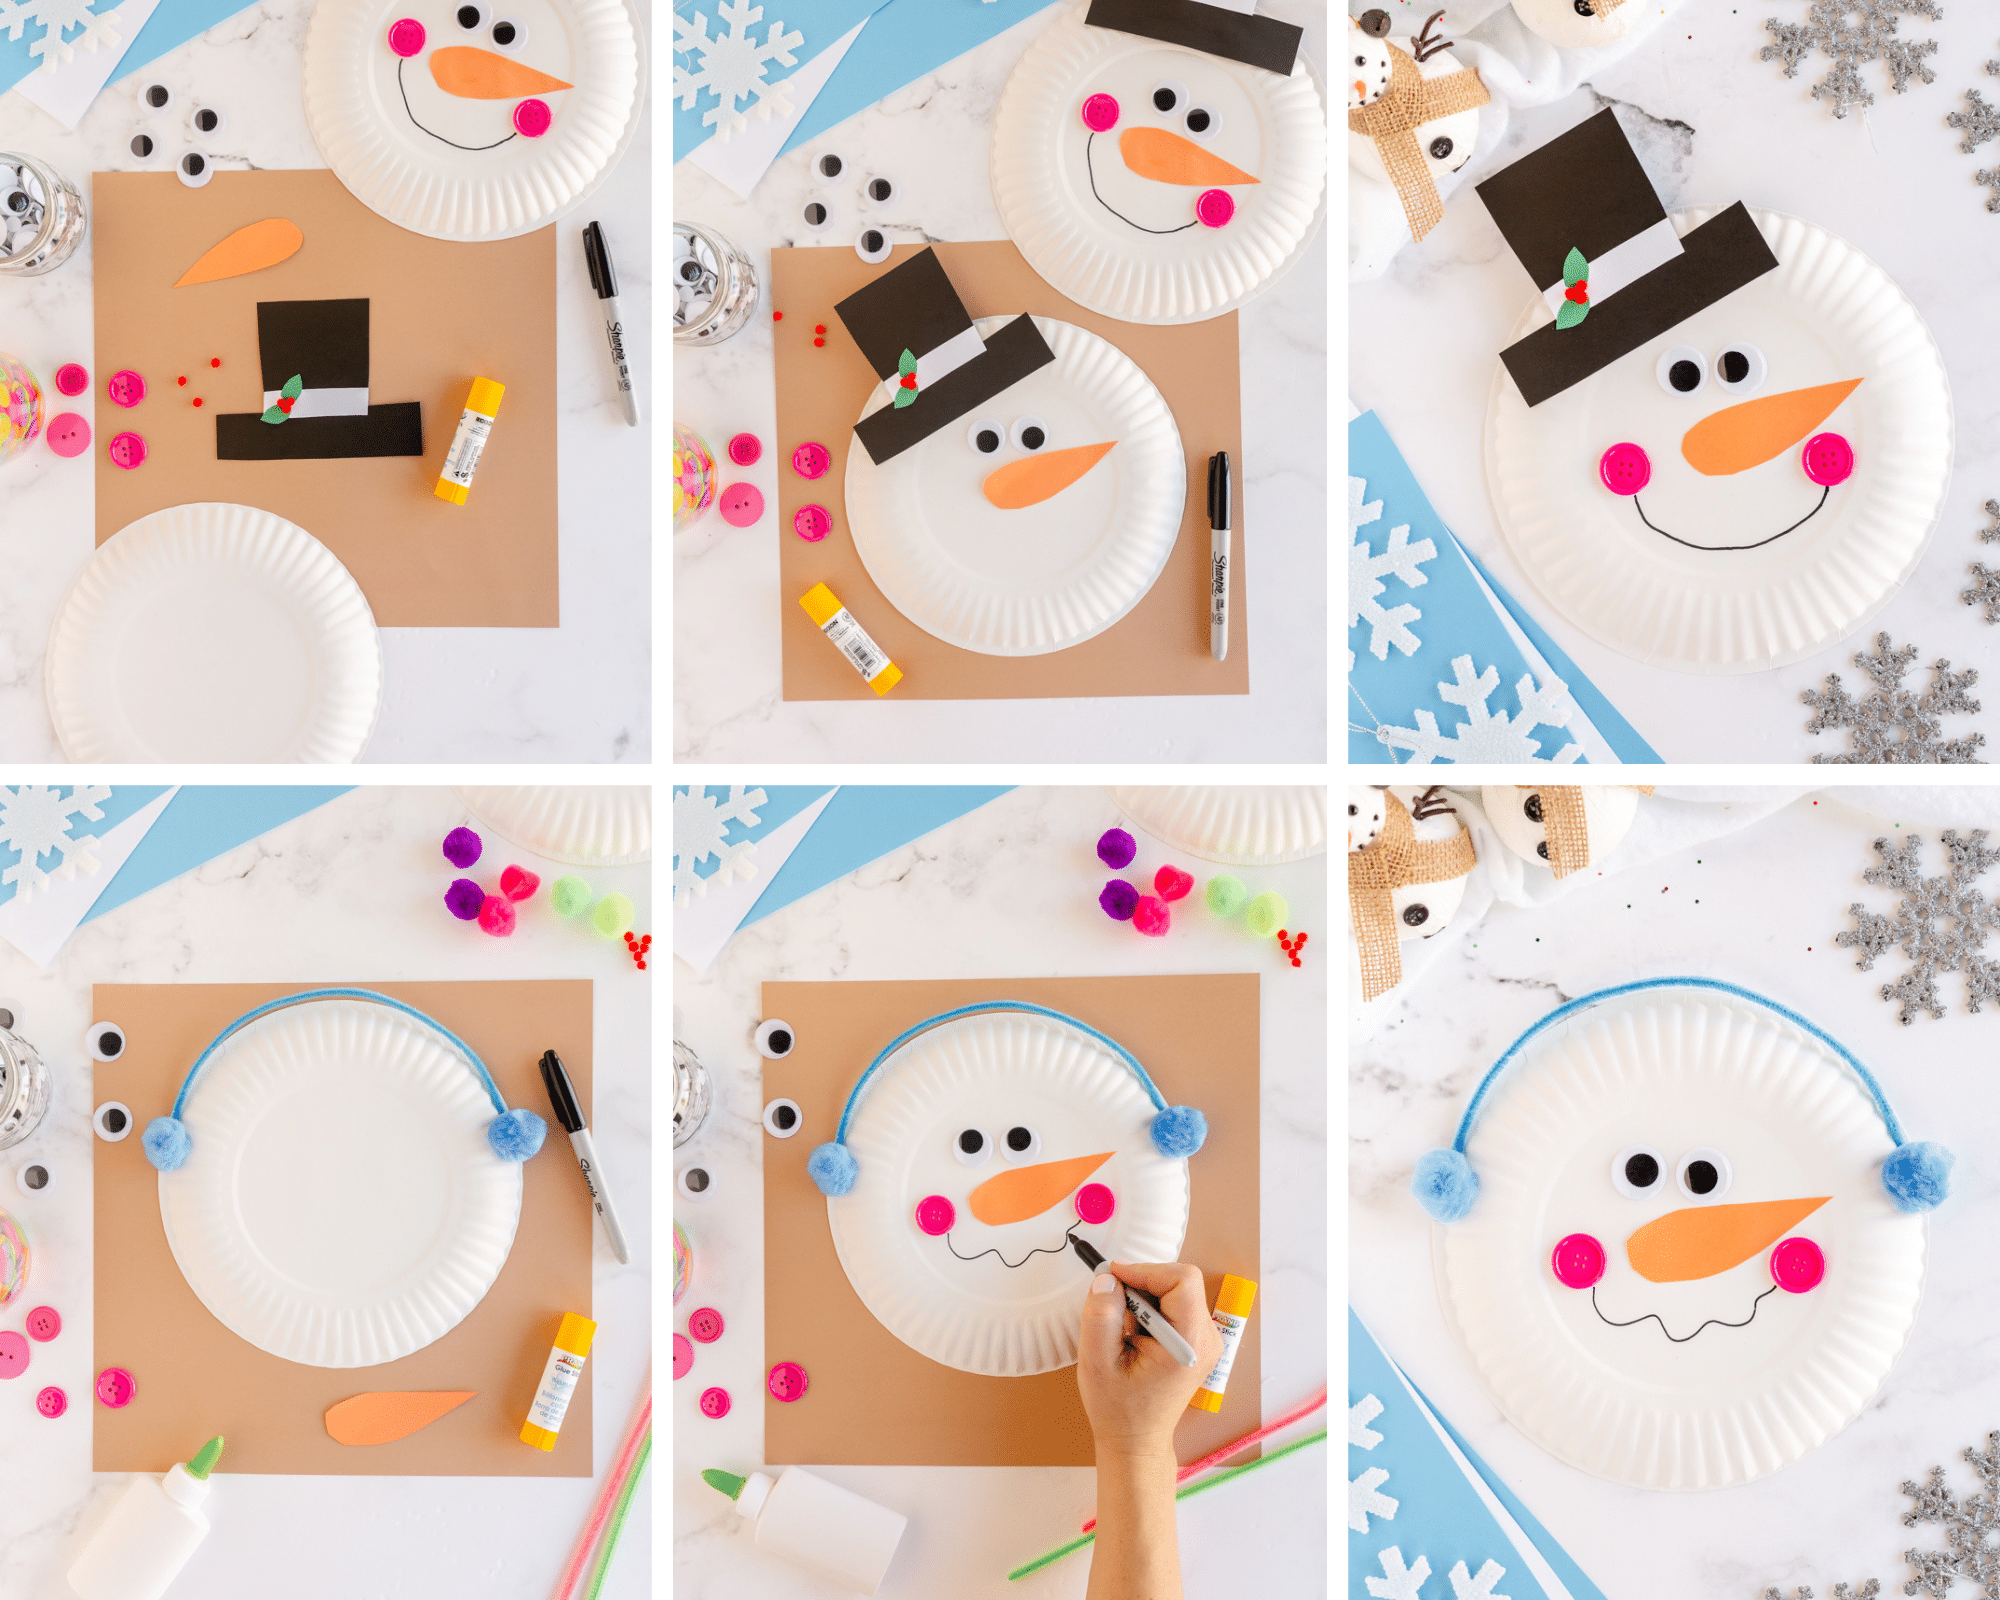 steps to make paper plate snowman, make top hat- add googley eyes- add nose and smile